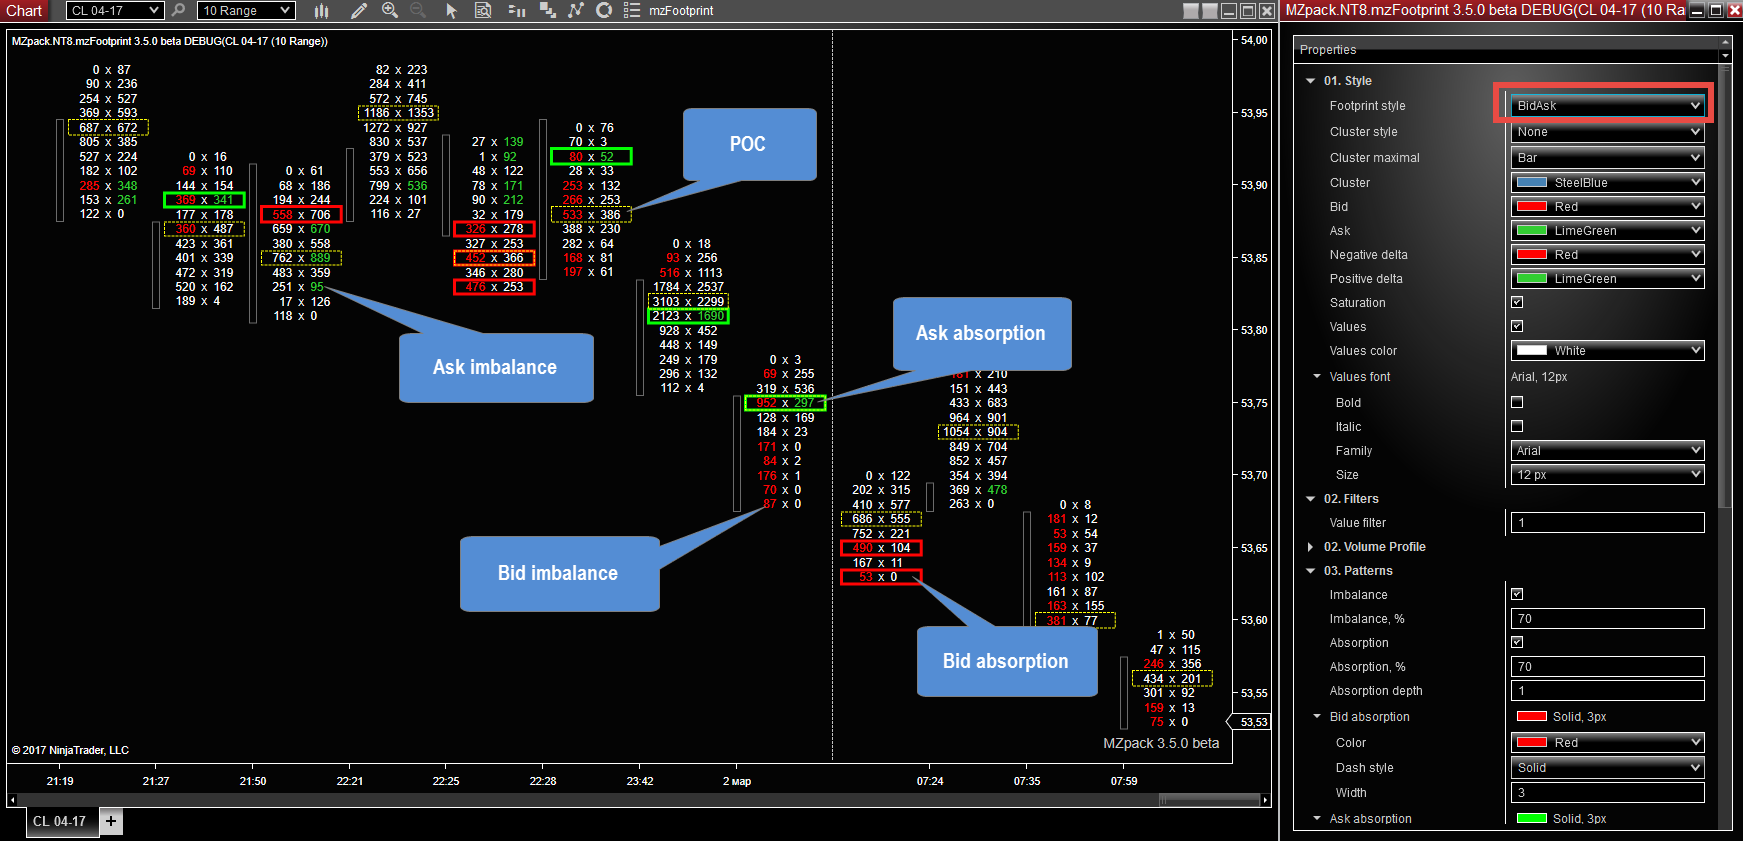 mzpack-footprint-indicator-for-ninjatrader-8-bid-x-ask-_